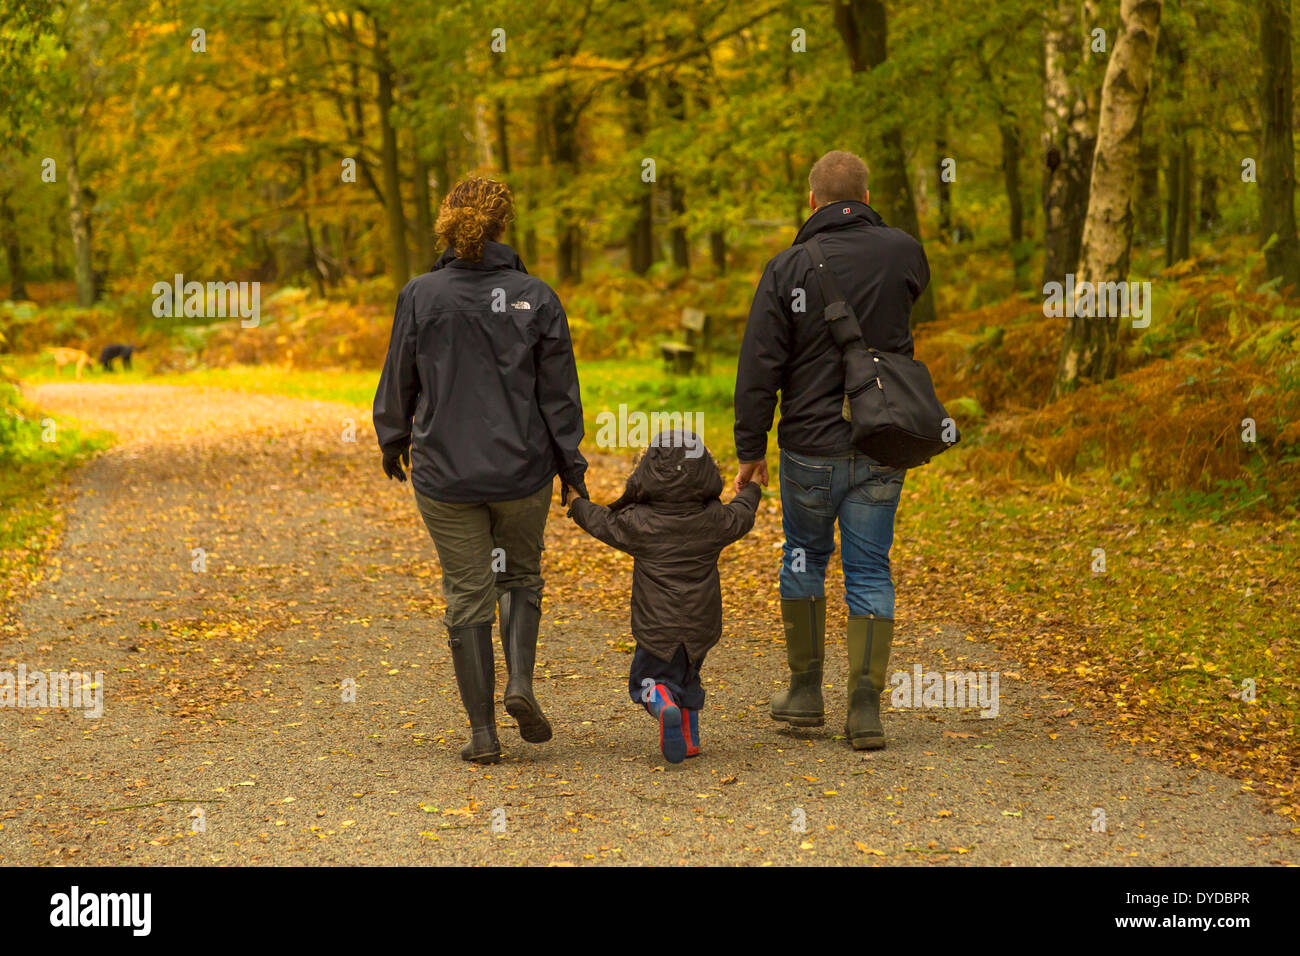 Un jeune de promenades à travers ses parents holding forestiers les mains. Photo Stock